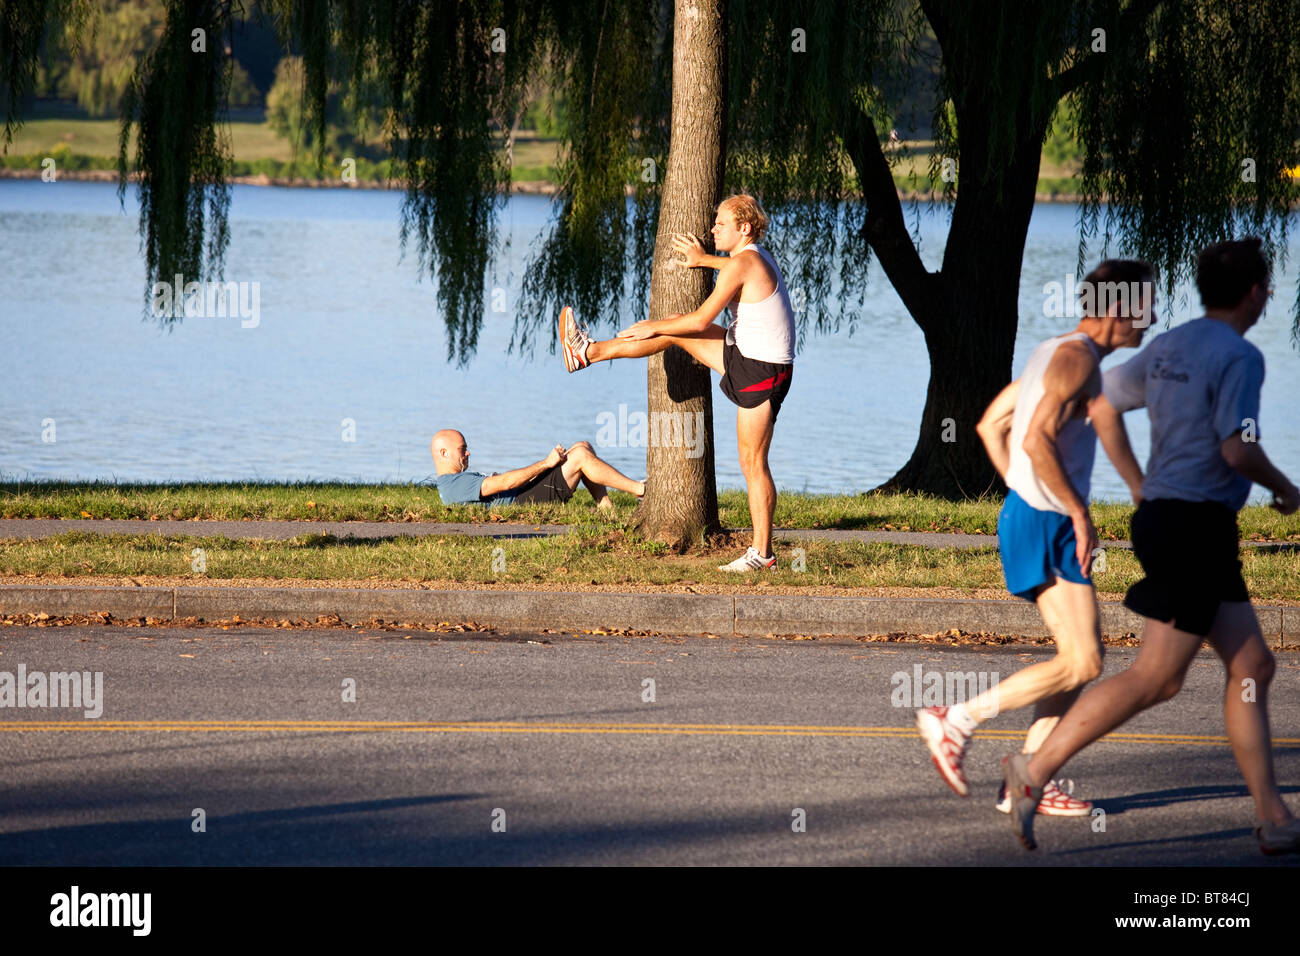 Stretching before a race in Washington DC - Stock Image